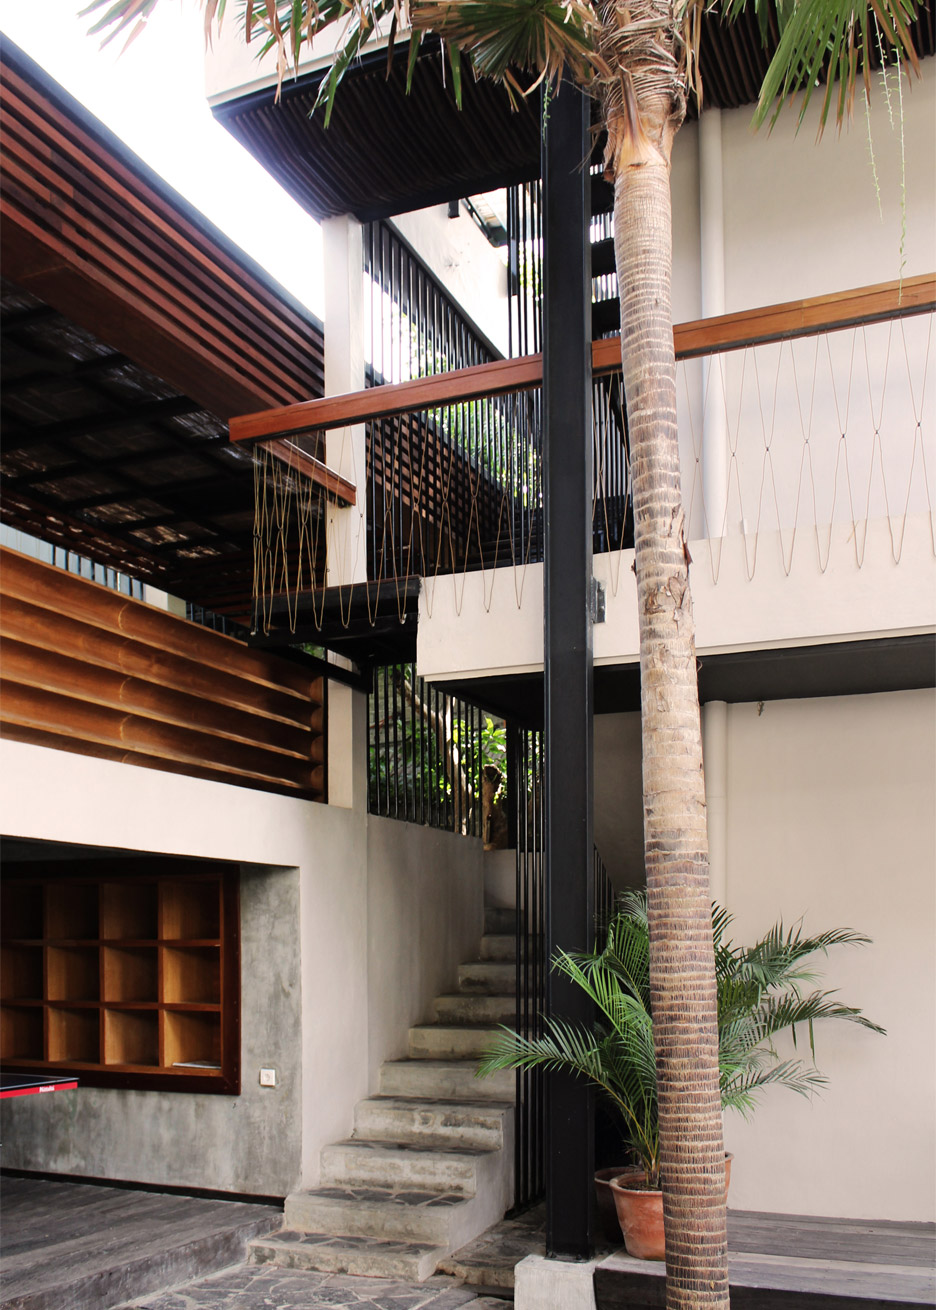 roam-co-living-working-alexis-dornier-residential-architecture-bali-indonesia_dezeen_936_14